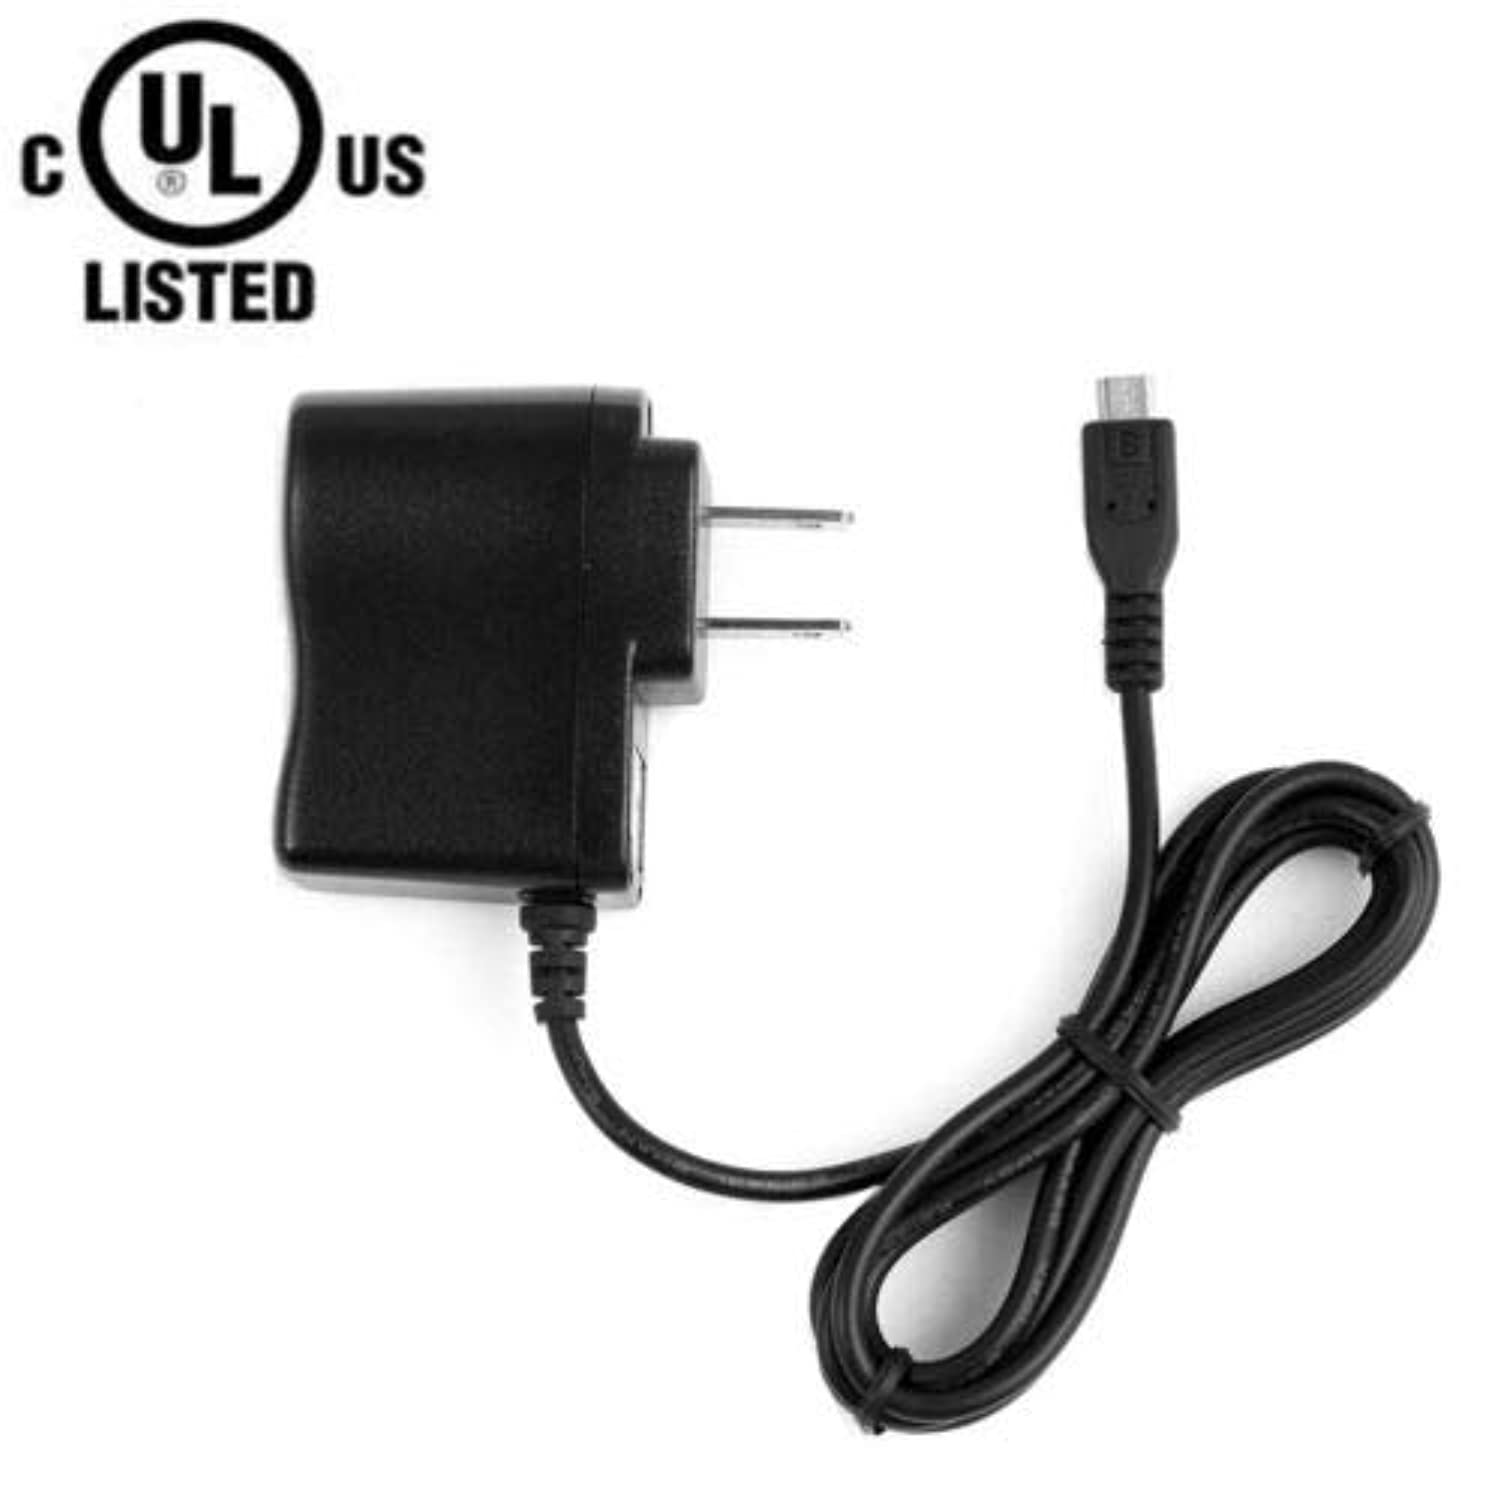 AC Adapter for Samsung SEW-3043W BrightVIEW Baby Video Monitoring System Power